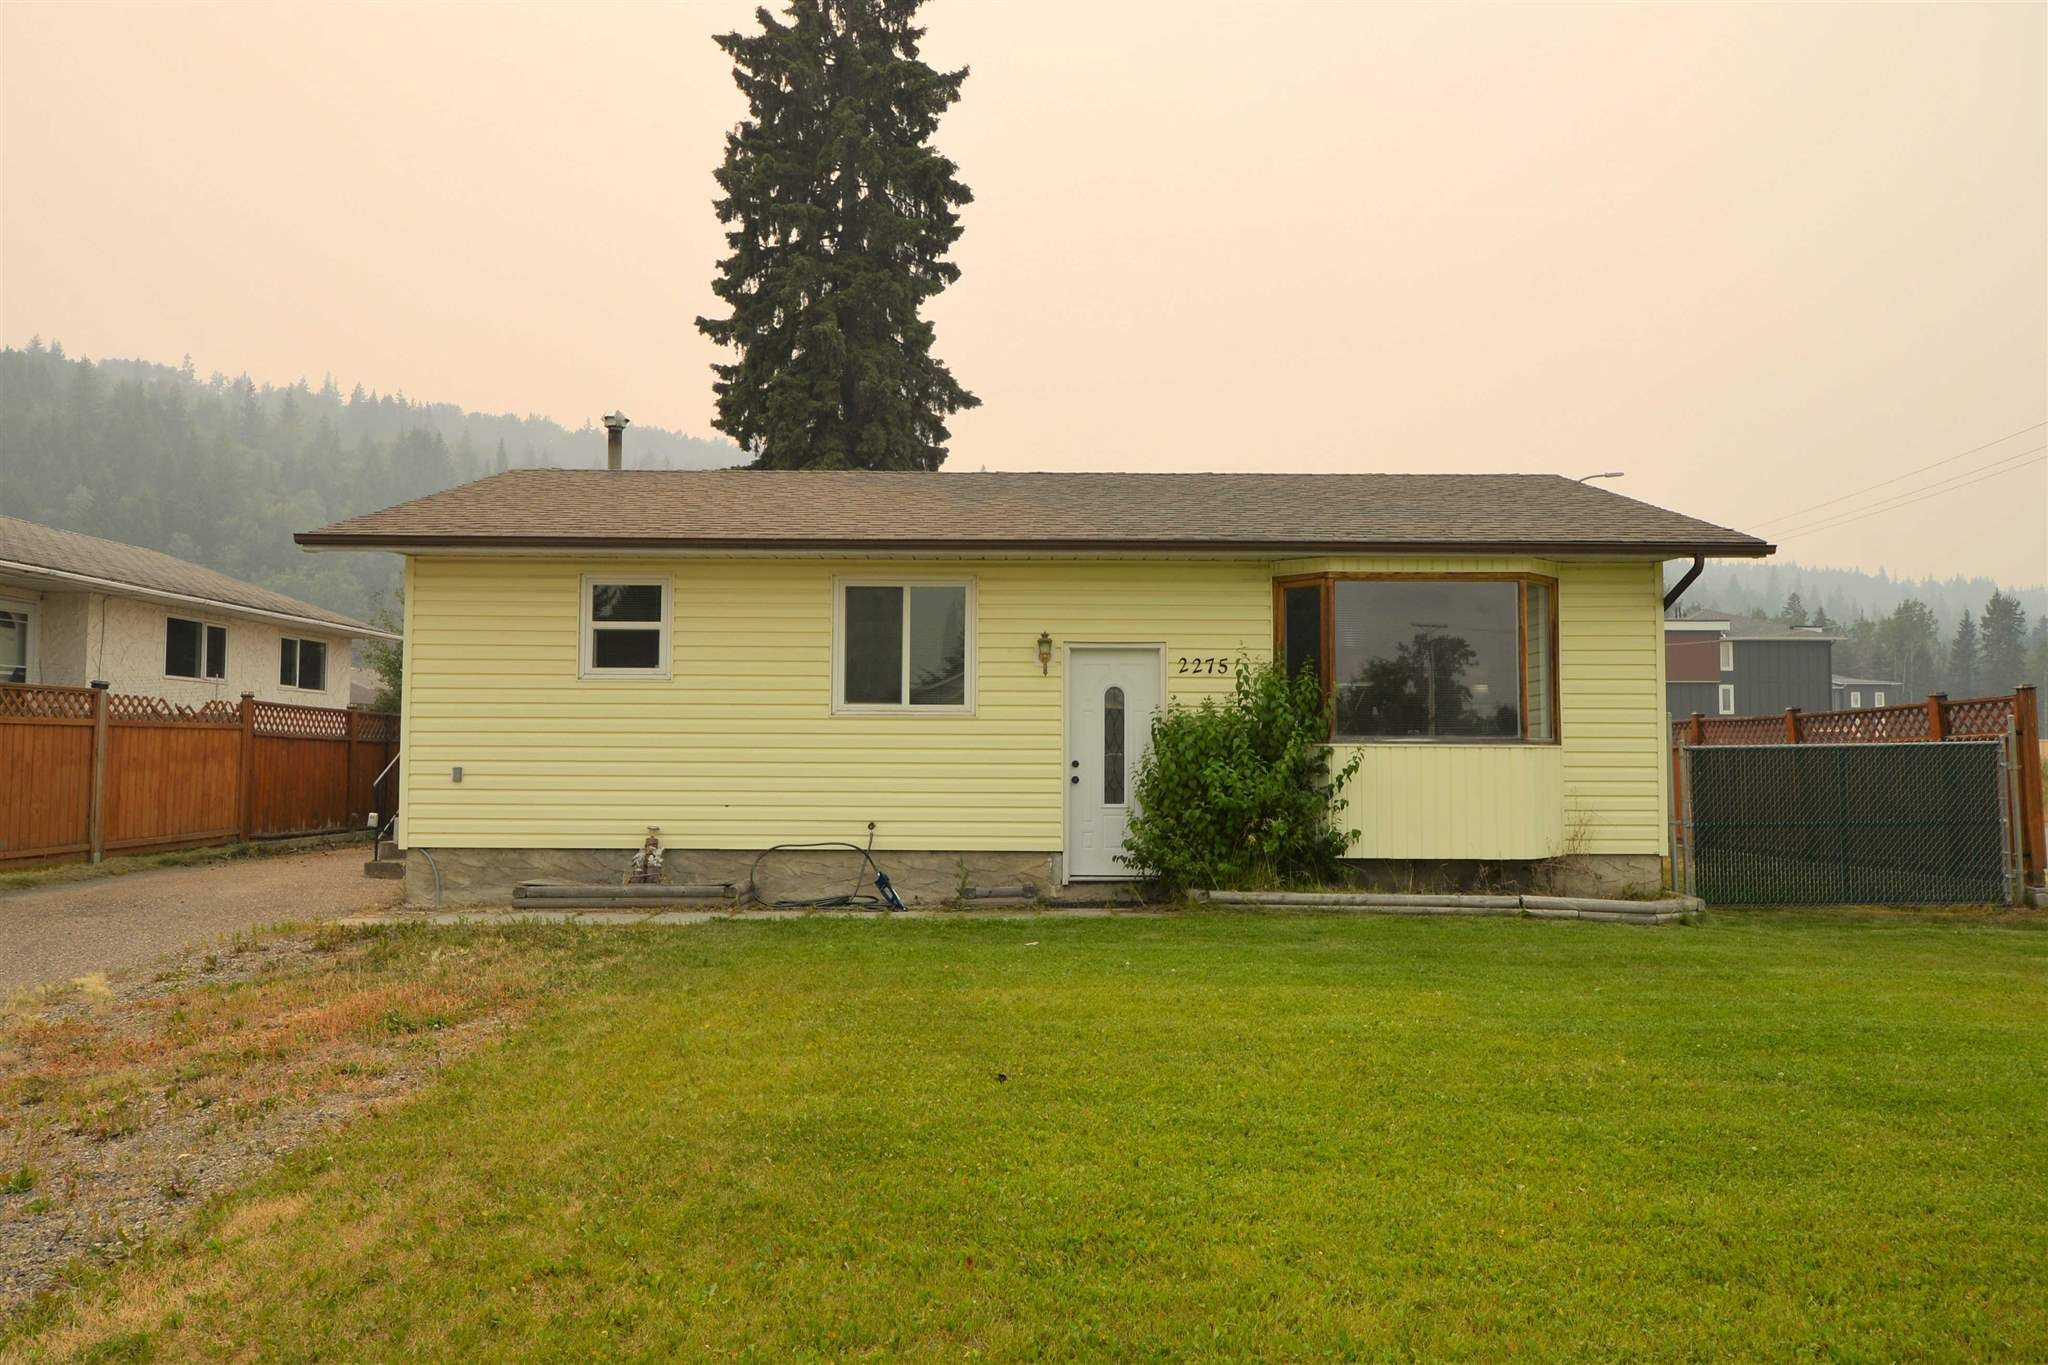 """Main Photo: 2275 OLDS Street in Prince George: Pinecone House for sale in """"Pinecone"""" (PG City West (Zone 71))  : MLS®# R2602240"""